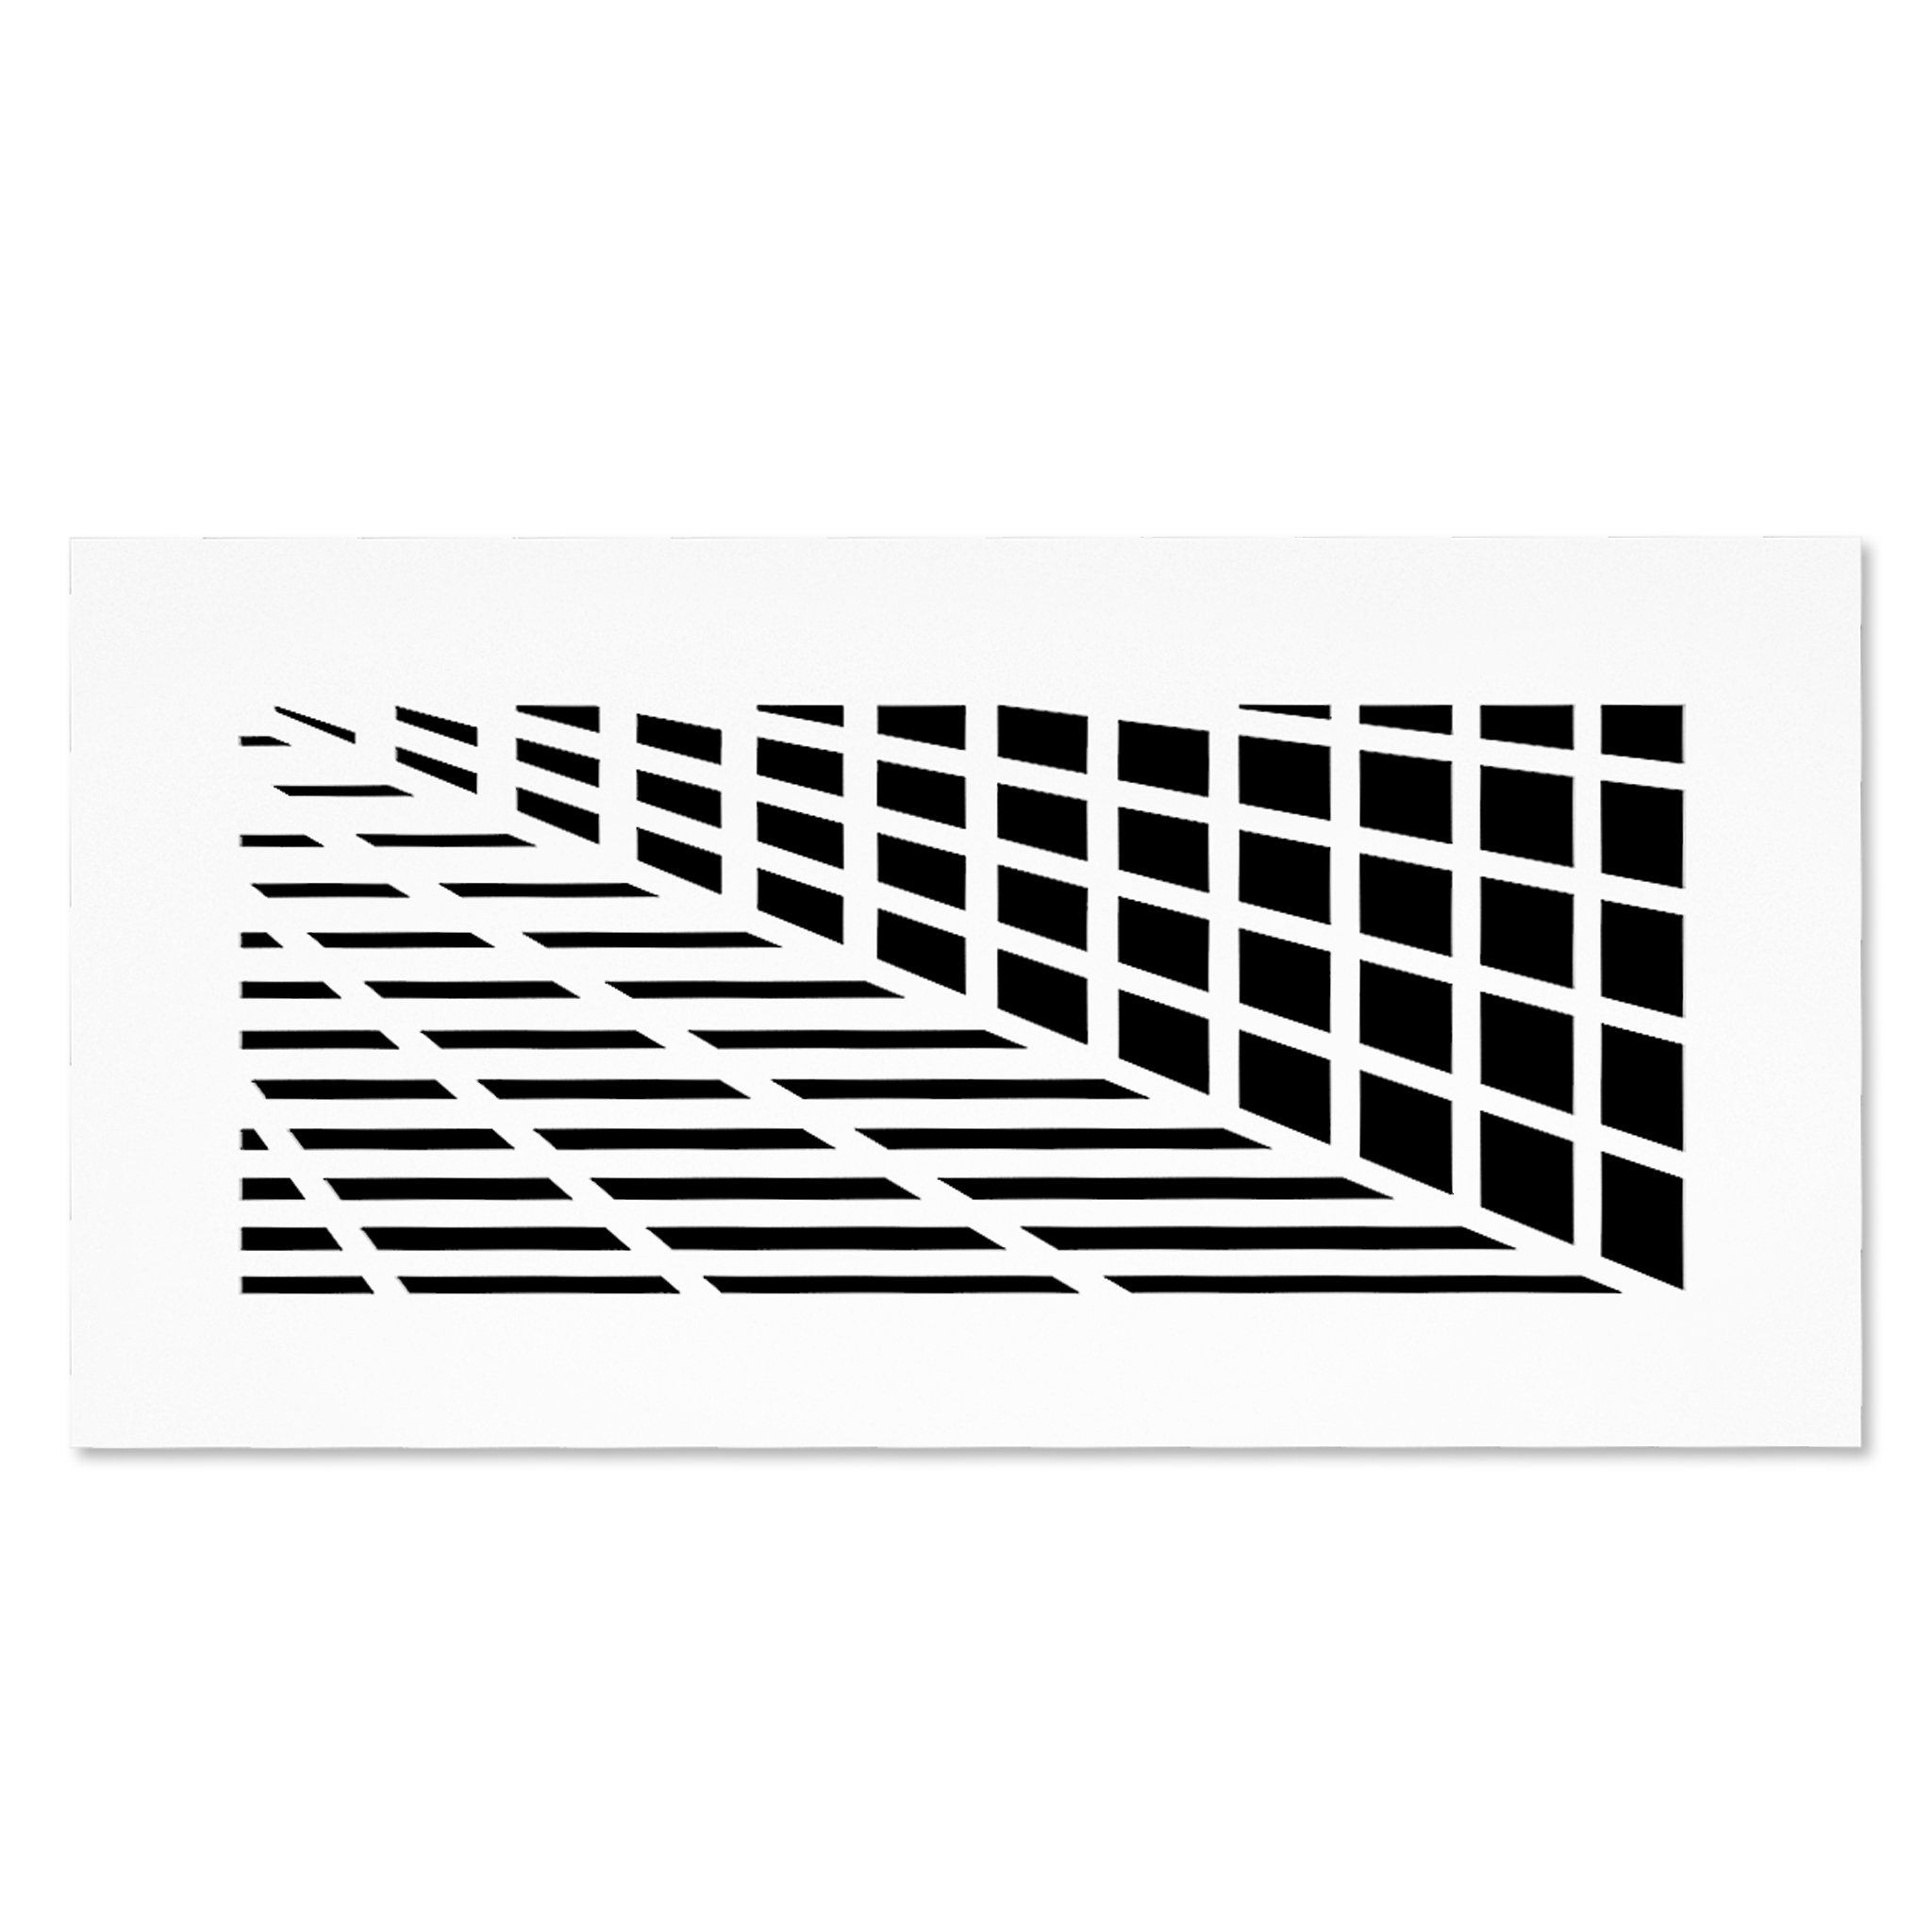 SABA Air Vent Covers Register - Acrylic Fiberglass Grille 8'' x 4'' Duct Opening (10'' x 6'' Overall) White Finish Decorative Cover for Walls & Ceilings (not for Floor use), Vivian